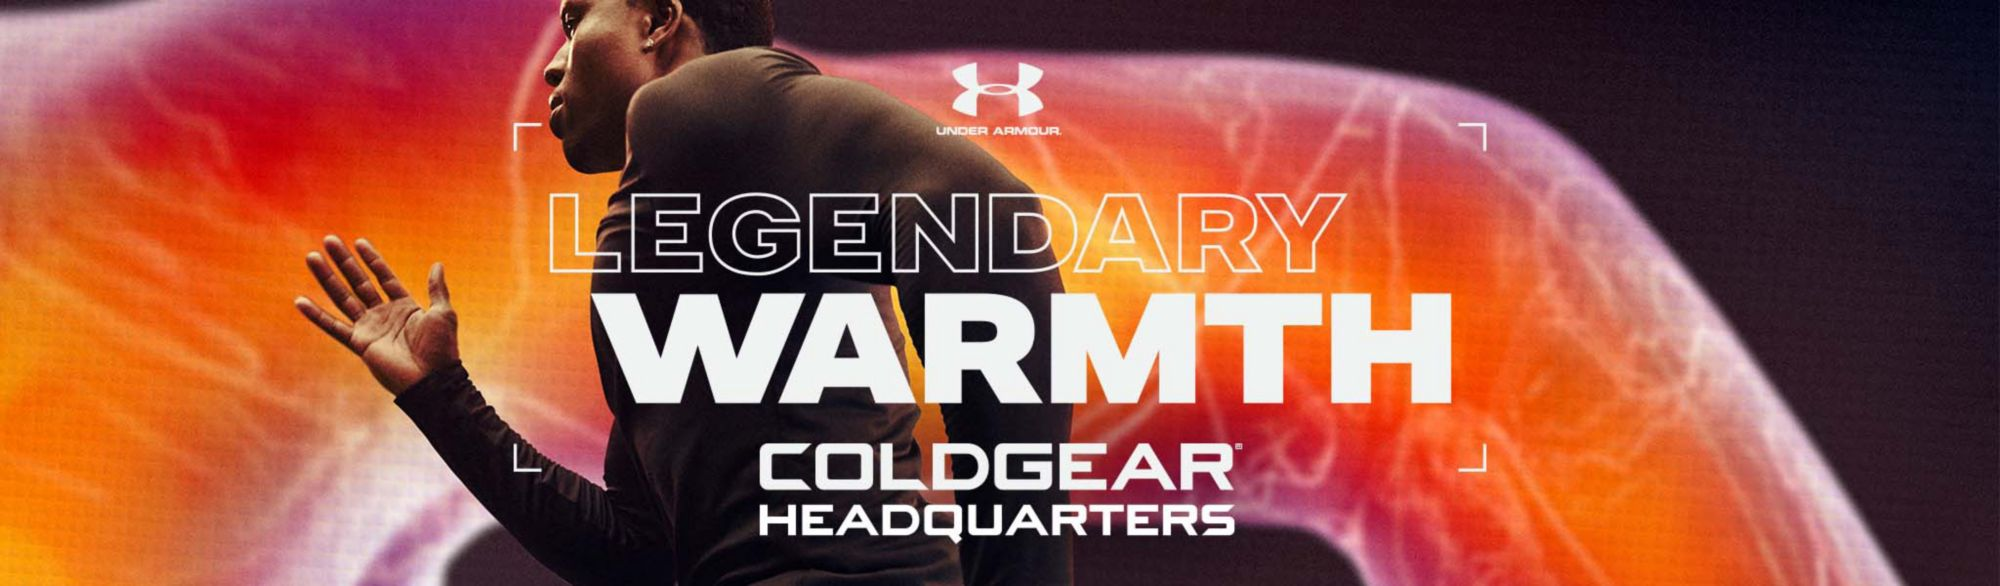 Under Armour Cold Gear Headquarters - Shop Now